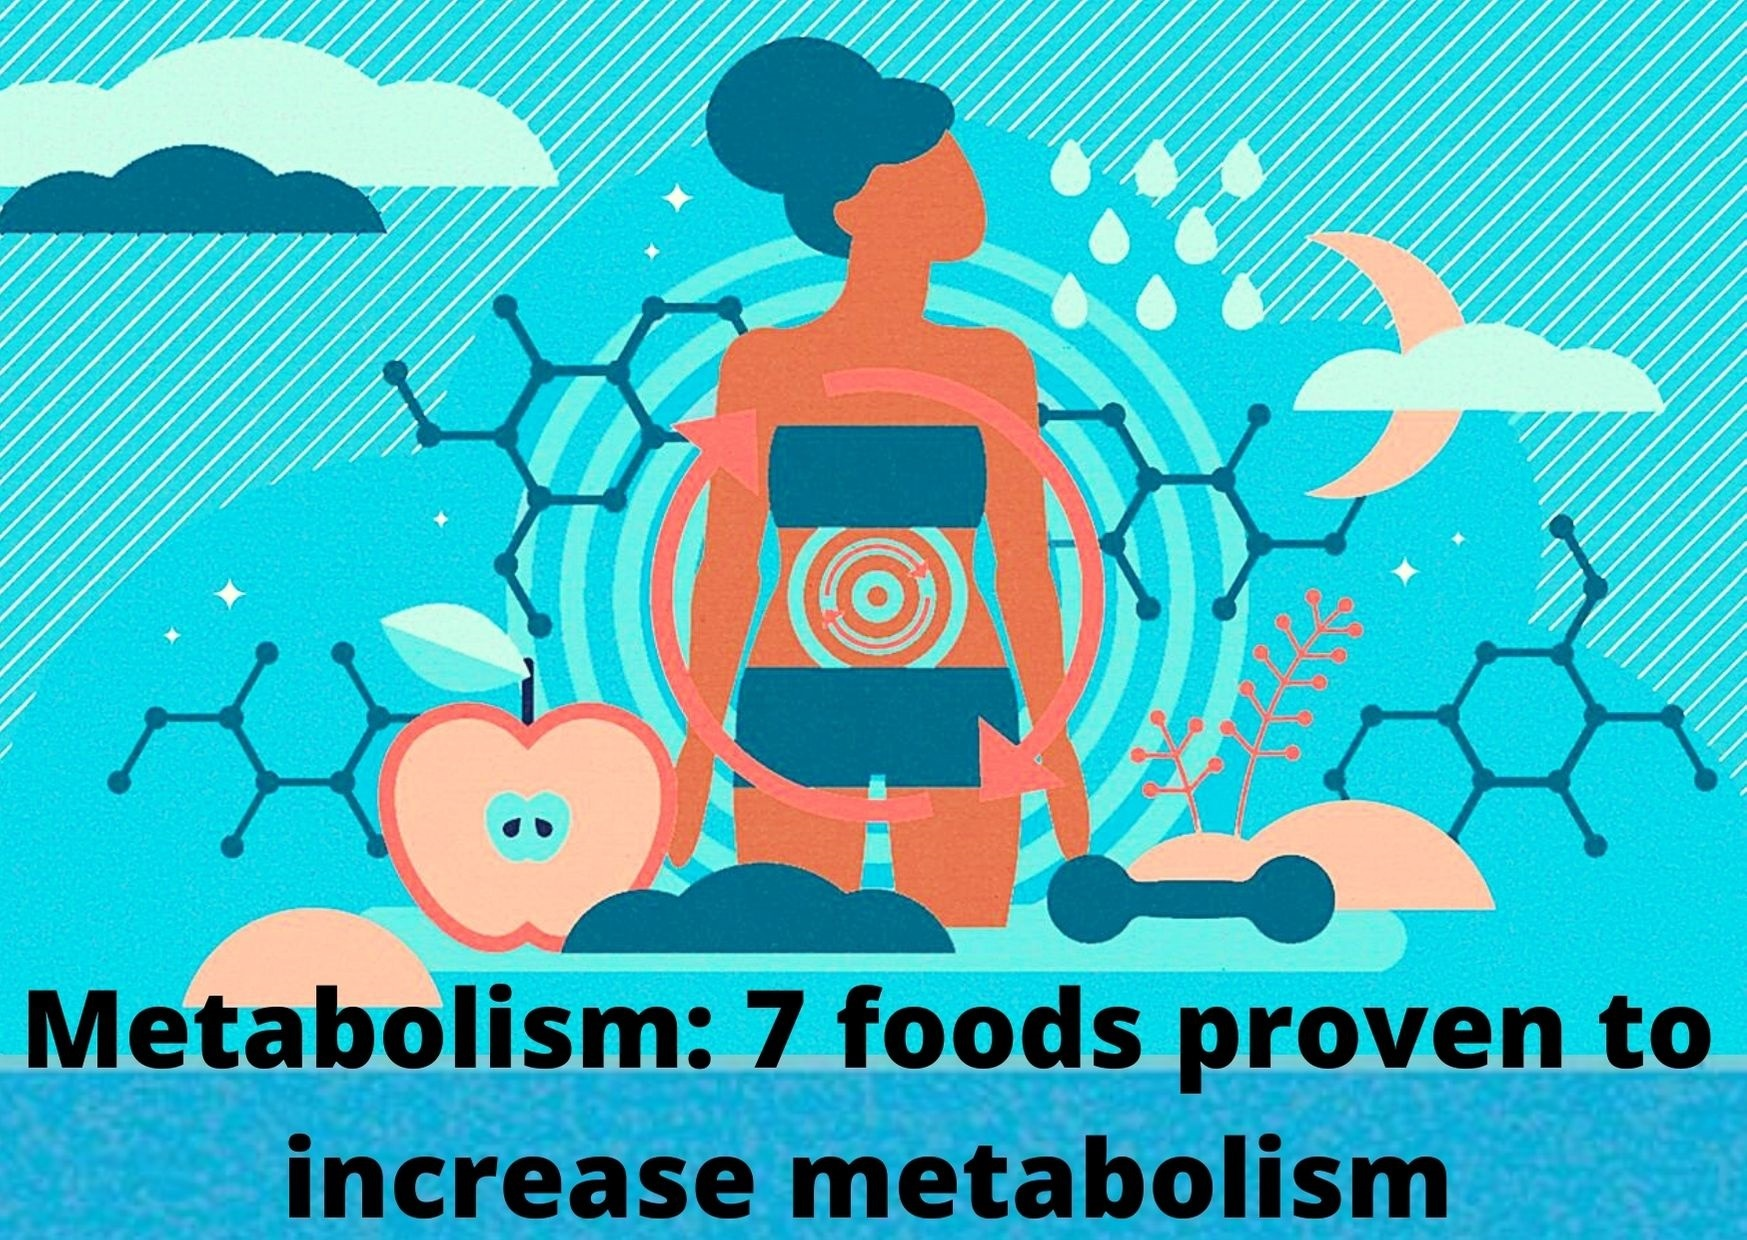 Metabolism: 7 foods proven to increase metabolism